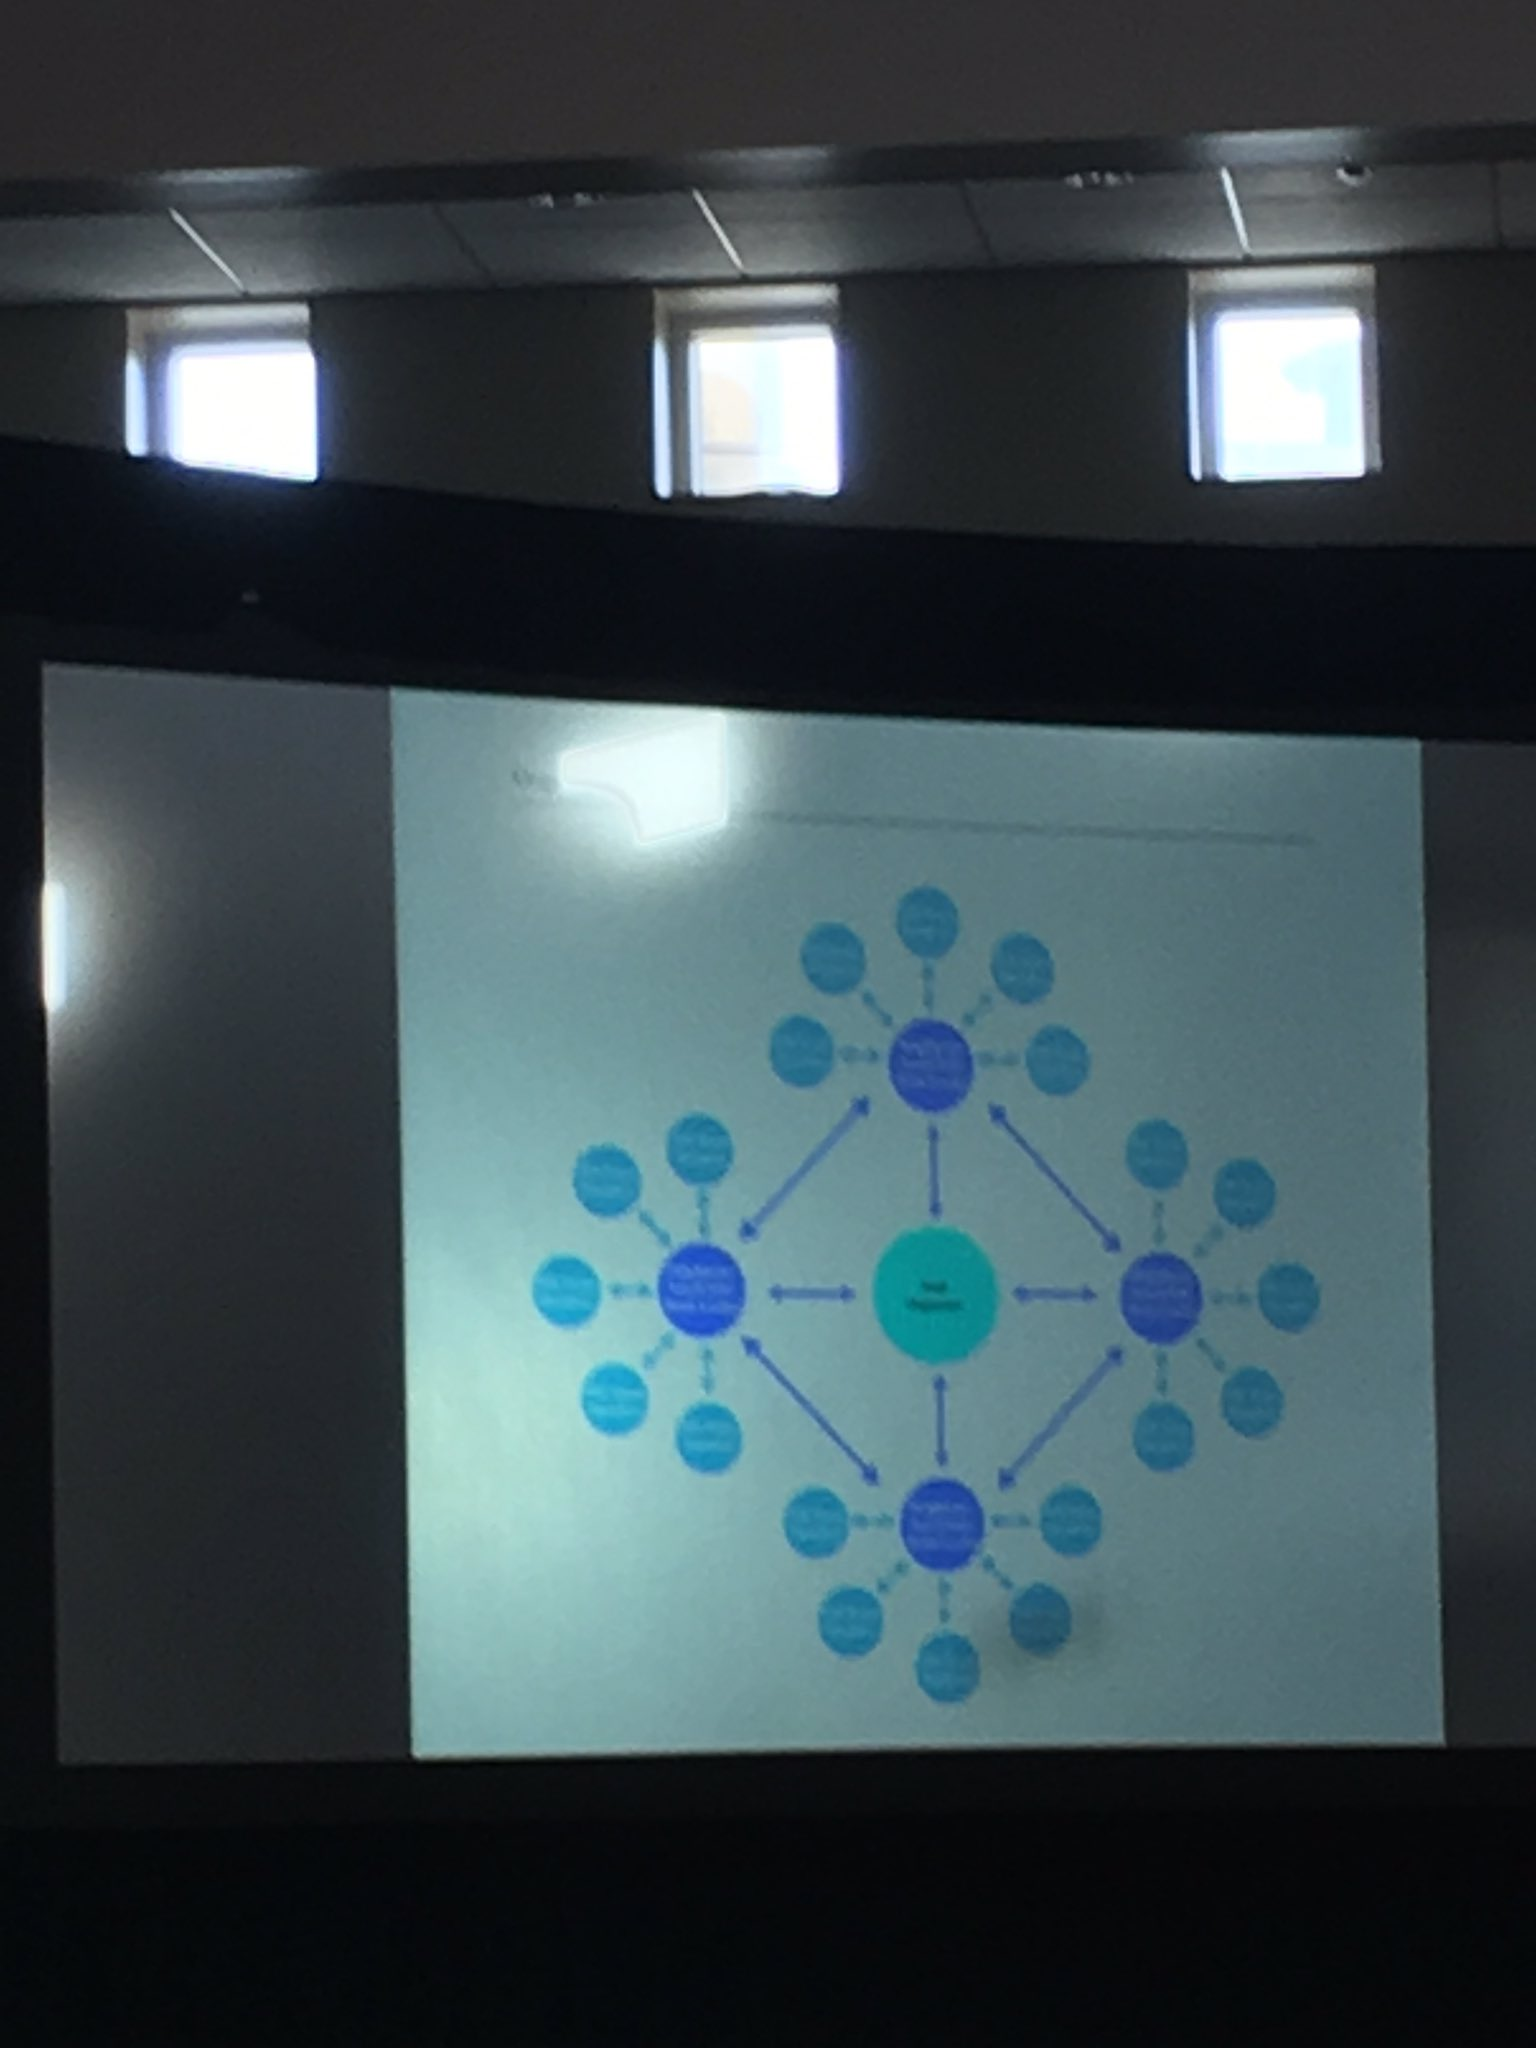 Snowflake model for the Obama campaign for communication--how can we become networked organizers in museums? #MCN2016 https://t.co/far7ScMgMg